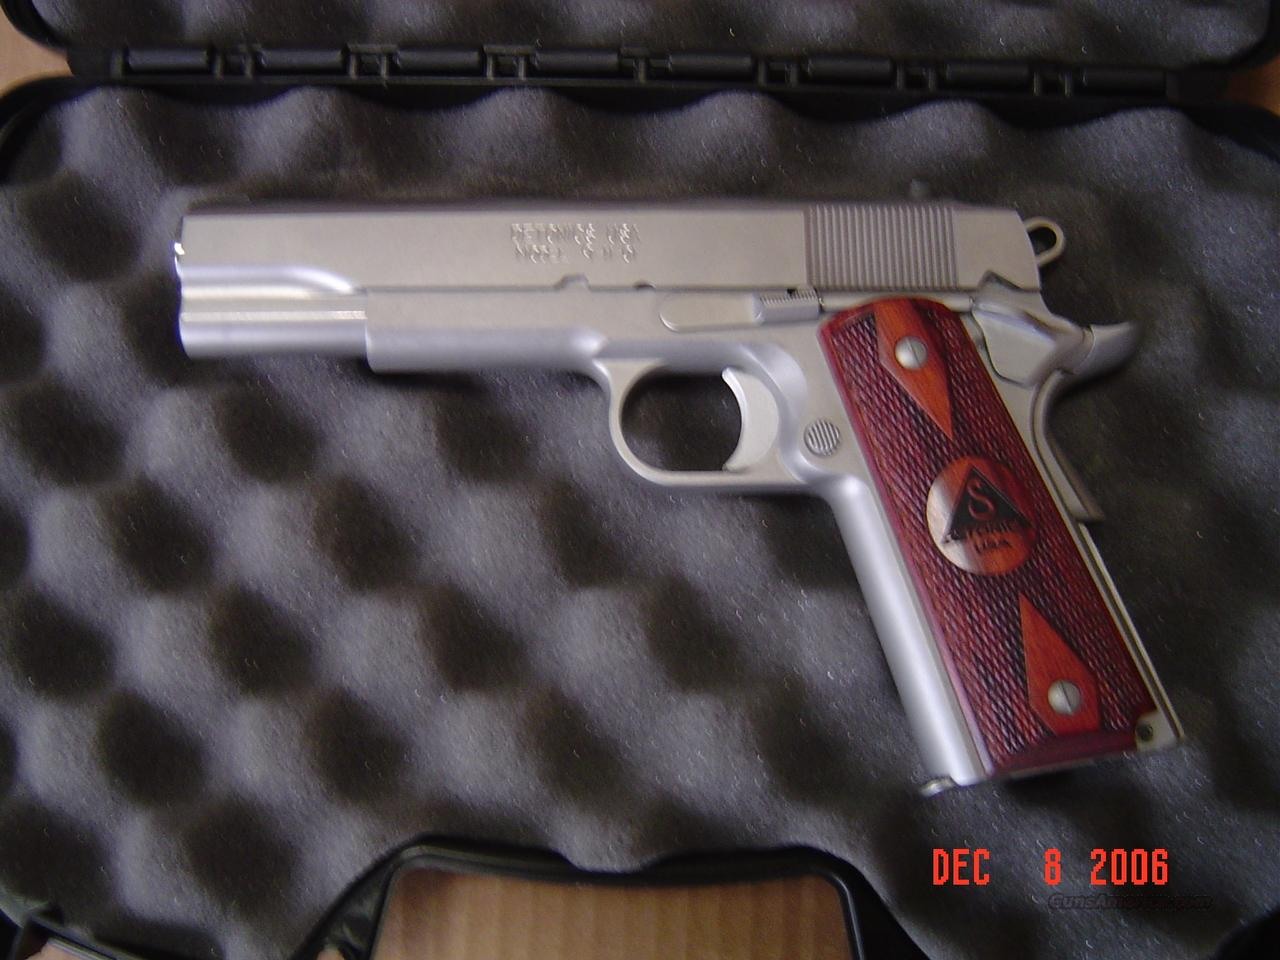 DETONICS 9-11-01 FULL SIZE 45  Guns > Pistols > 1911 Pistol Copies (non-Colt)